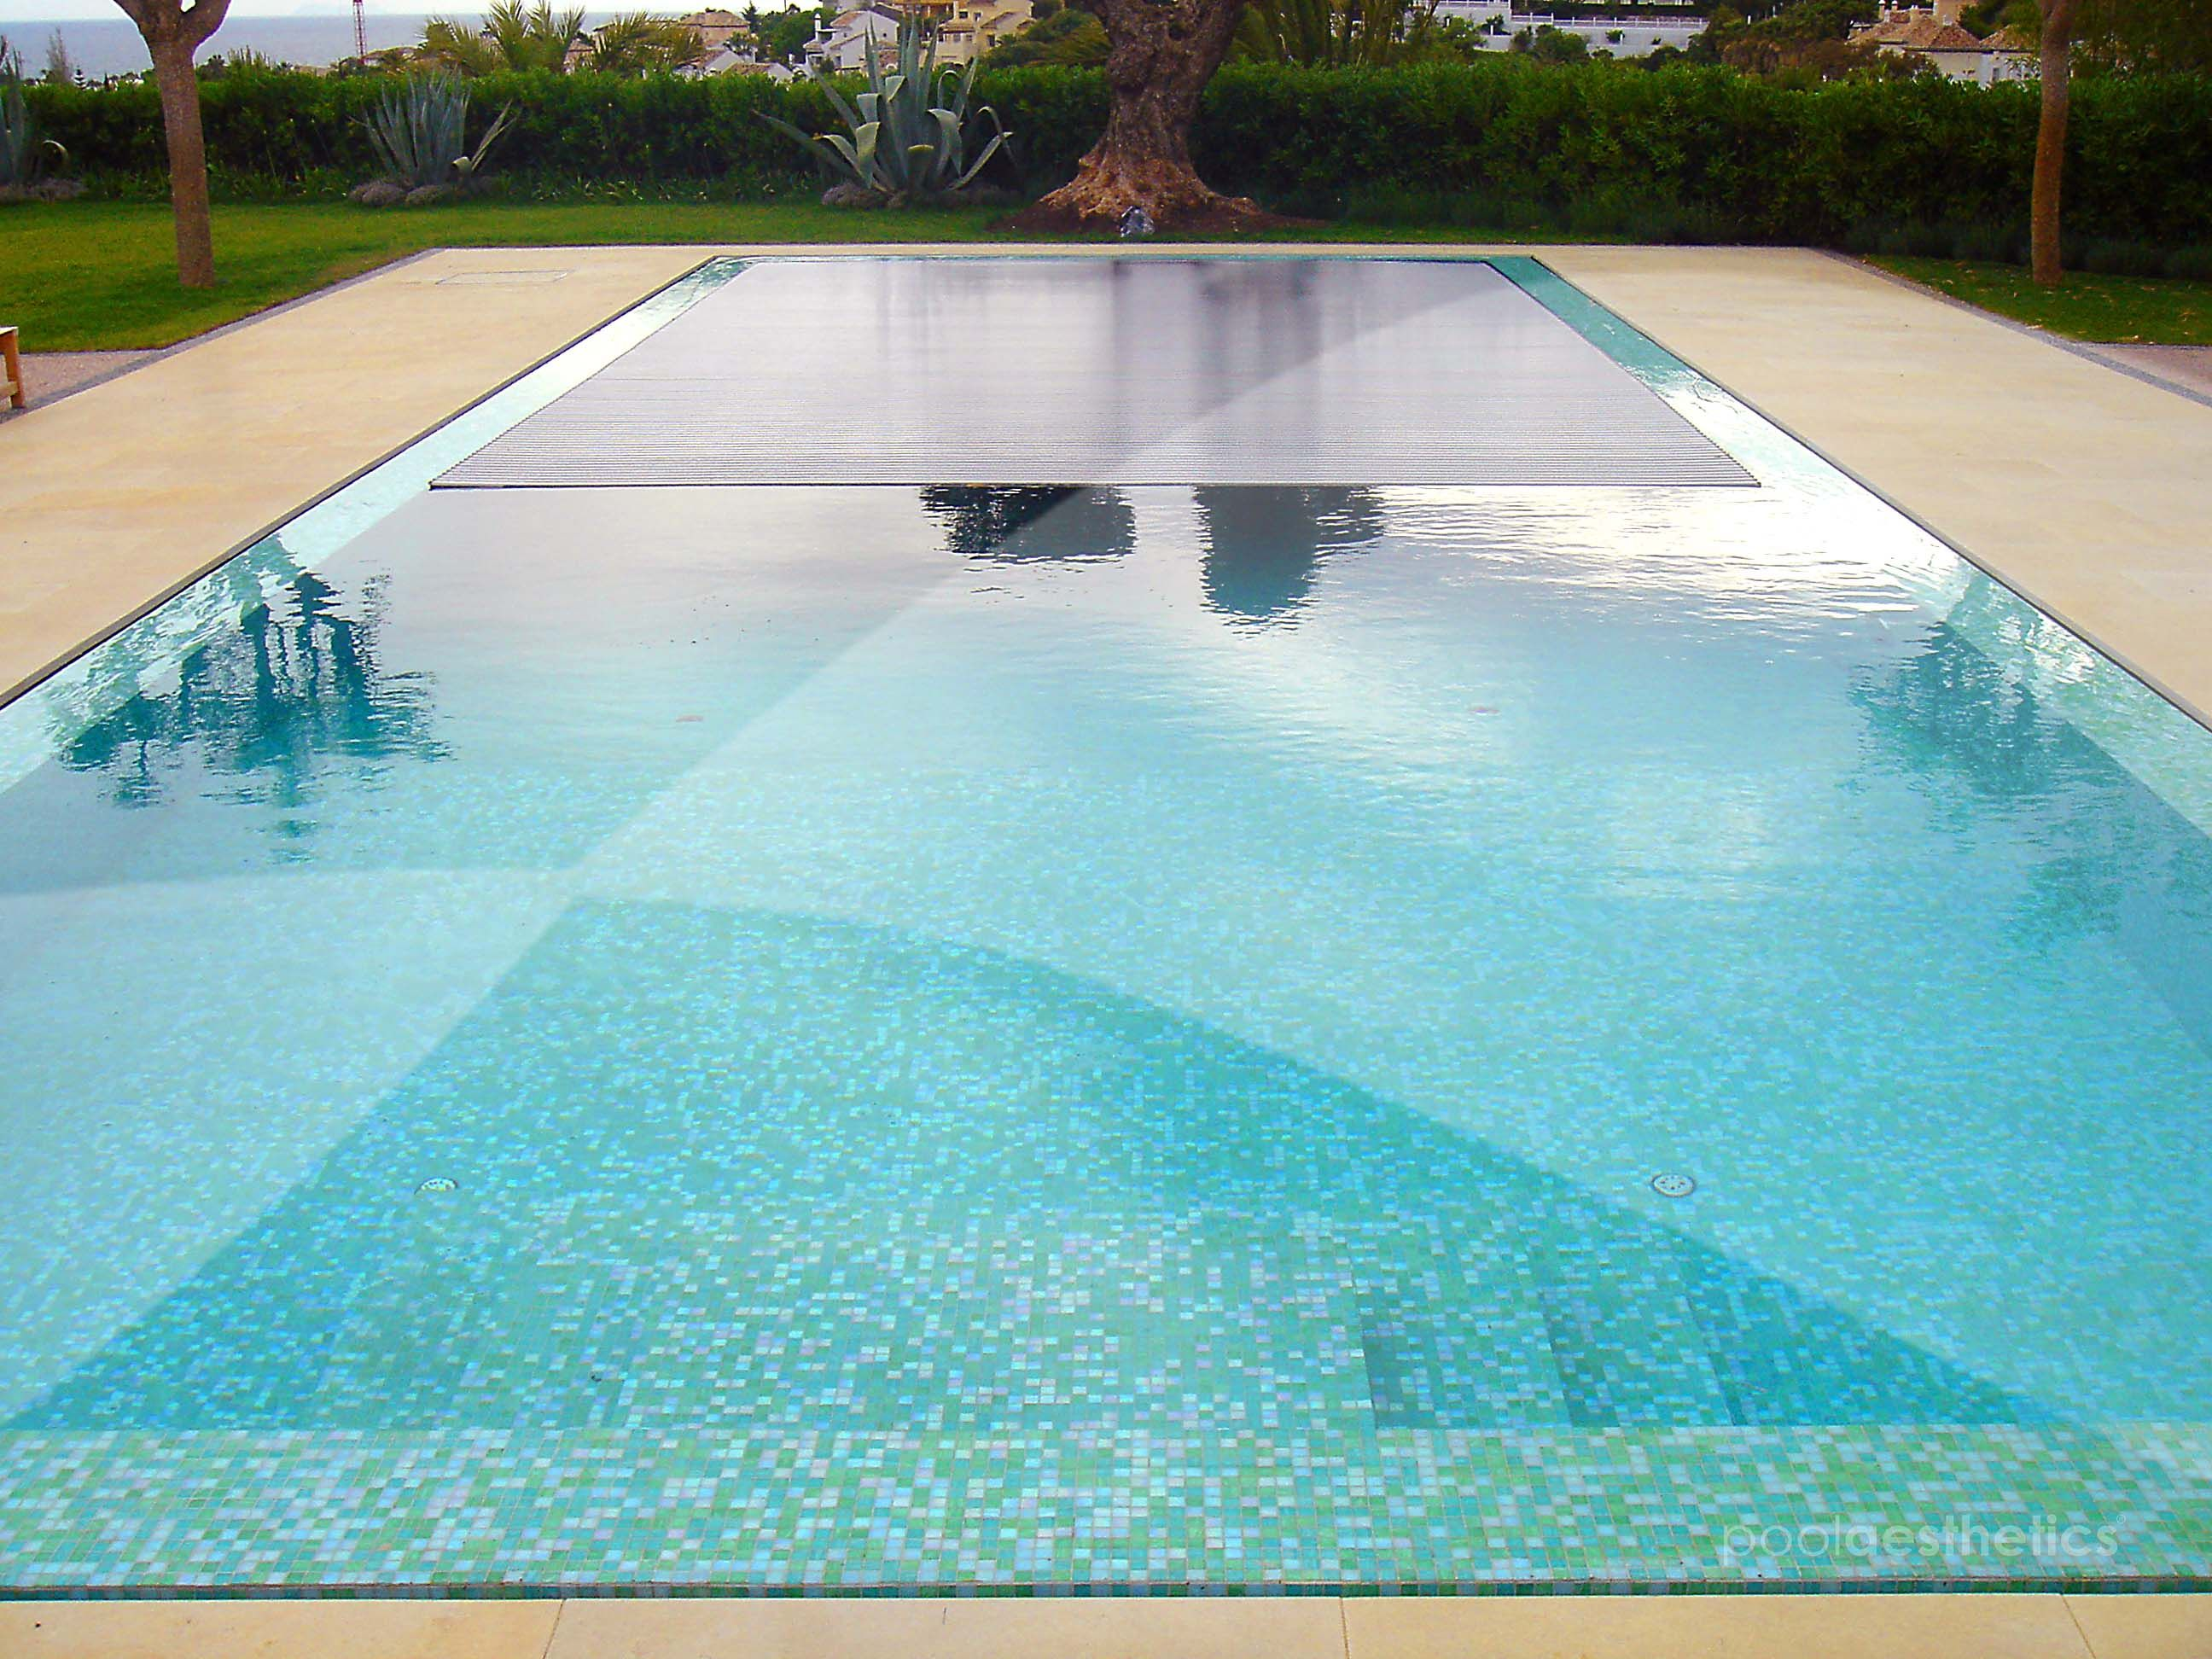 Pool Aus Paletten Erfahrungen Special Pools Projects Pool Aesthetics Pools Covers Covers